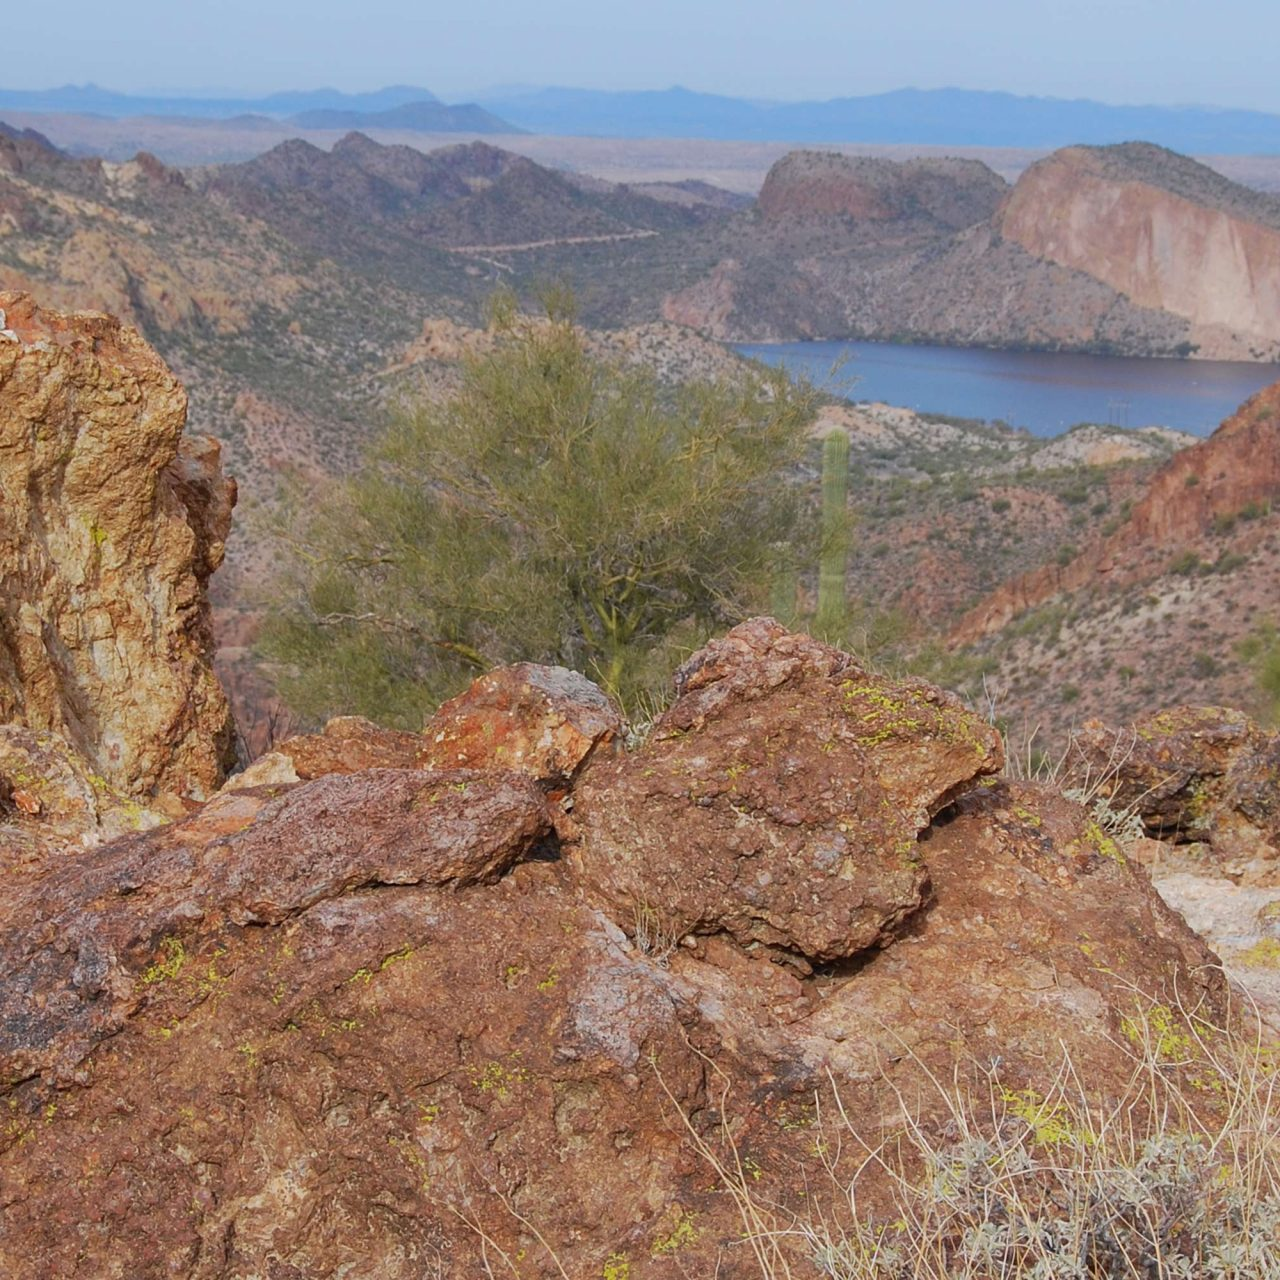 Hike LaBarge Narrows in the Superstition Wilderness Area